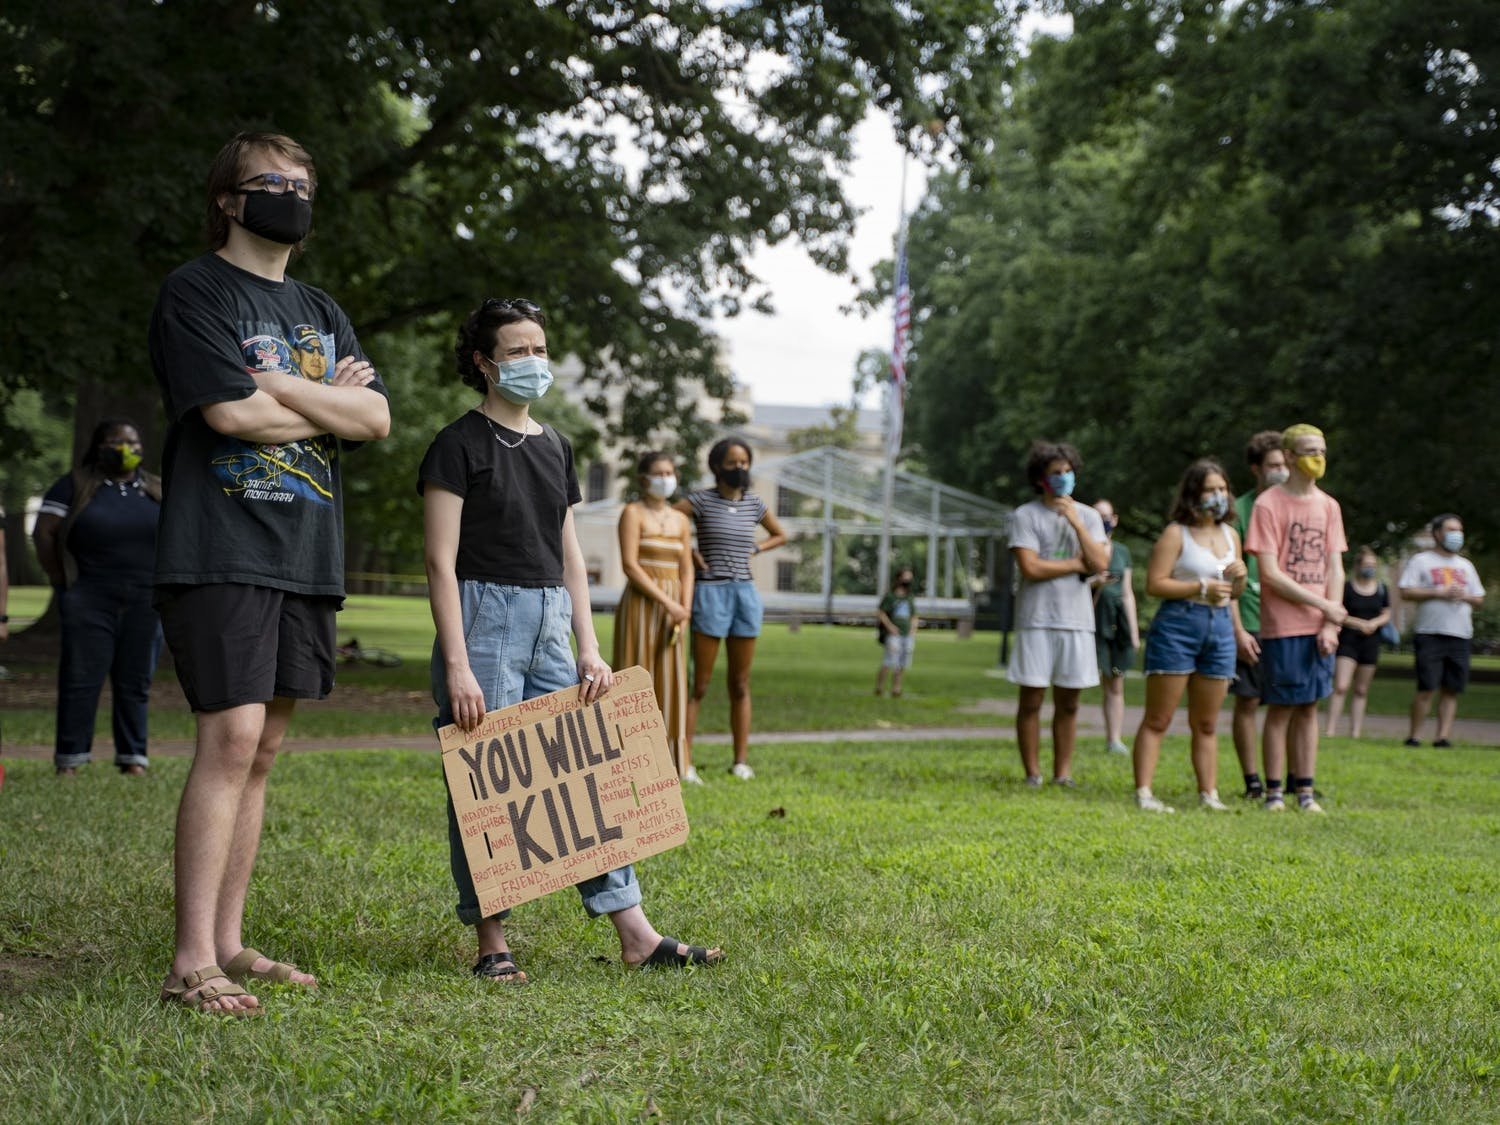 Students and other UNC community members in masks listen to Jennifer Standish, a UNC graduate student in the Department of History, speak at the Die-In Protest organized by the Anti-Racist Graduate Worker Collective on Wednesday, Aug. 5, 2020. The protest called for UNC to transition to fully remote classes for the Fall 2020 semester after a letter of caution sent to Chancellor Guskiewicz by the Orange County Health Director Quintana Stewart.